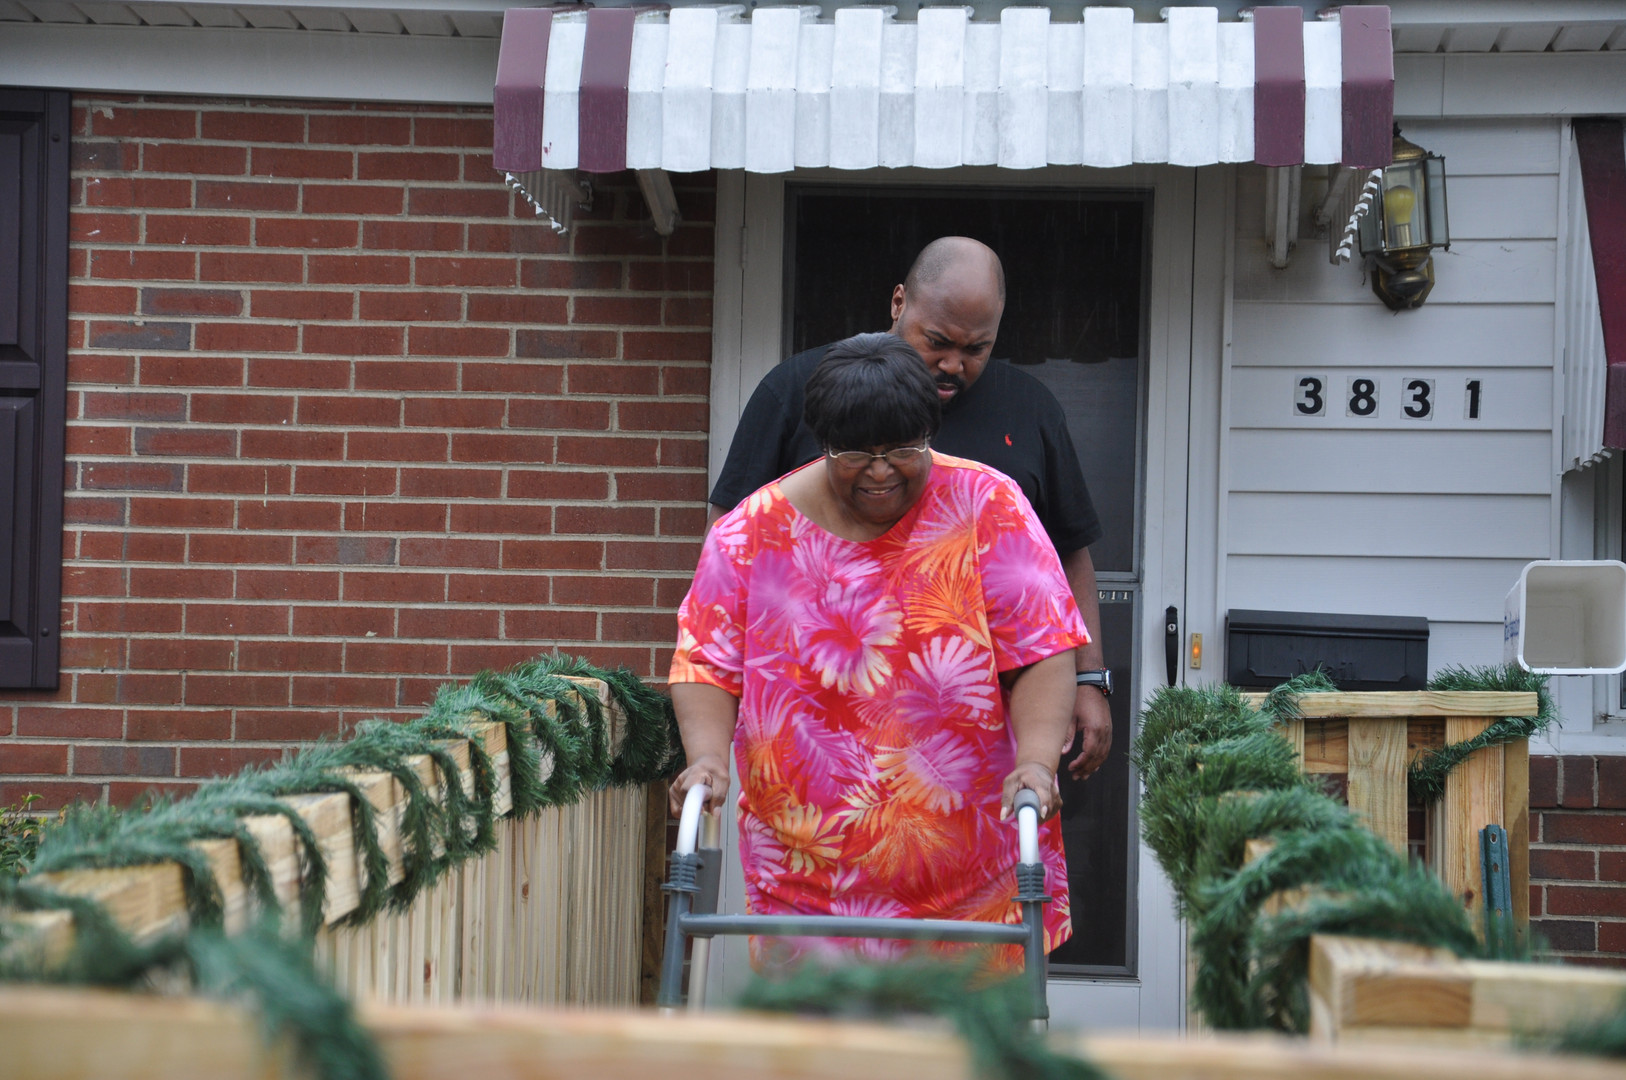 A disabled, elderly woman in the City of Richmond receives a ramp just in time for the holidays.